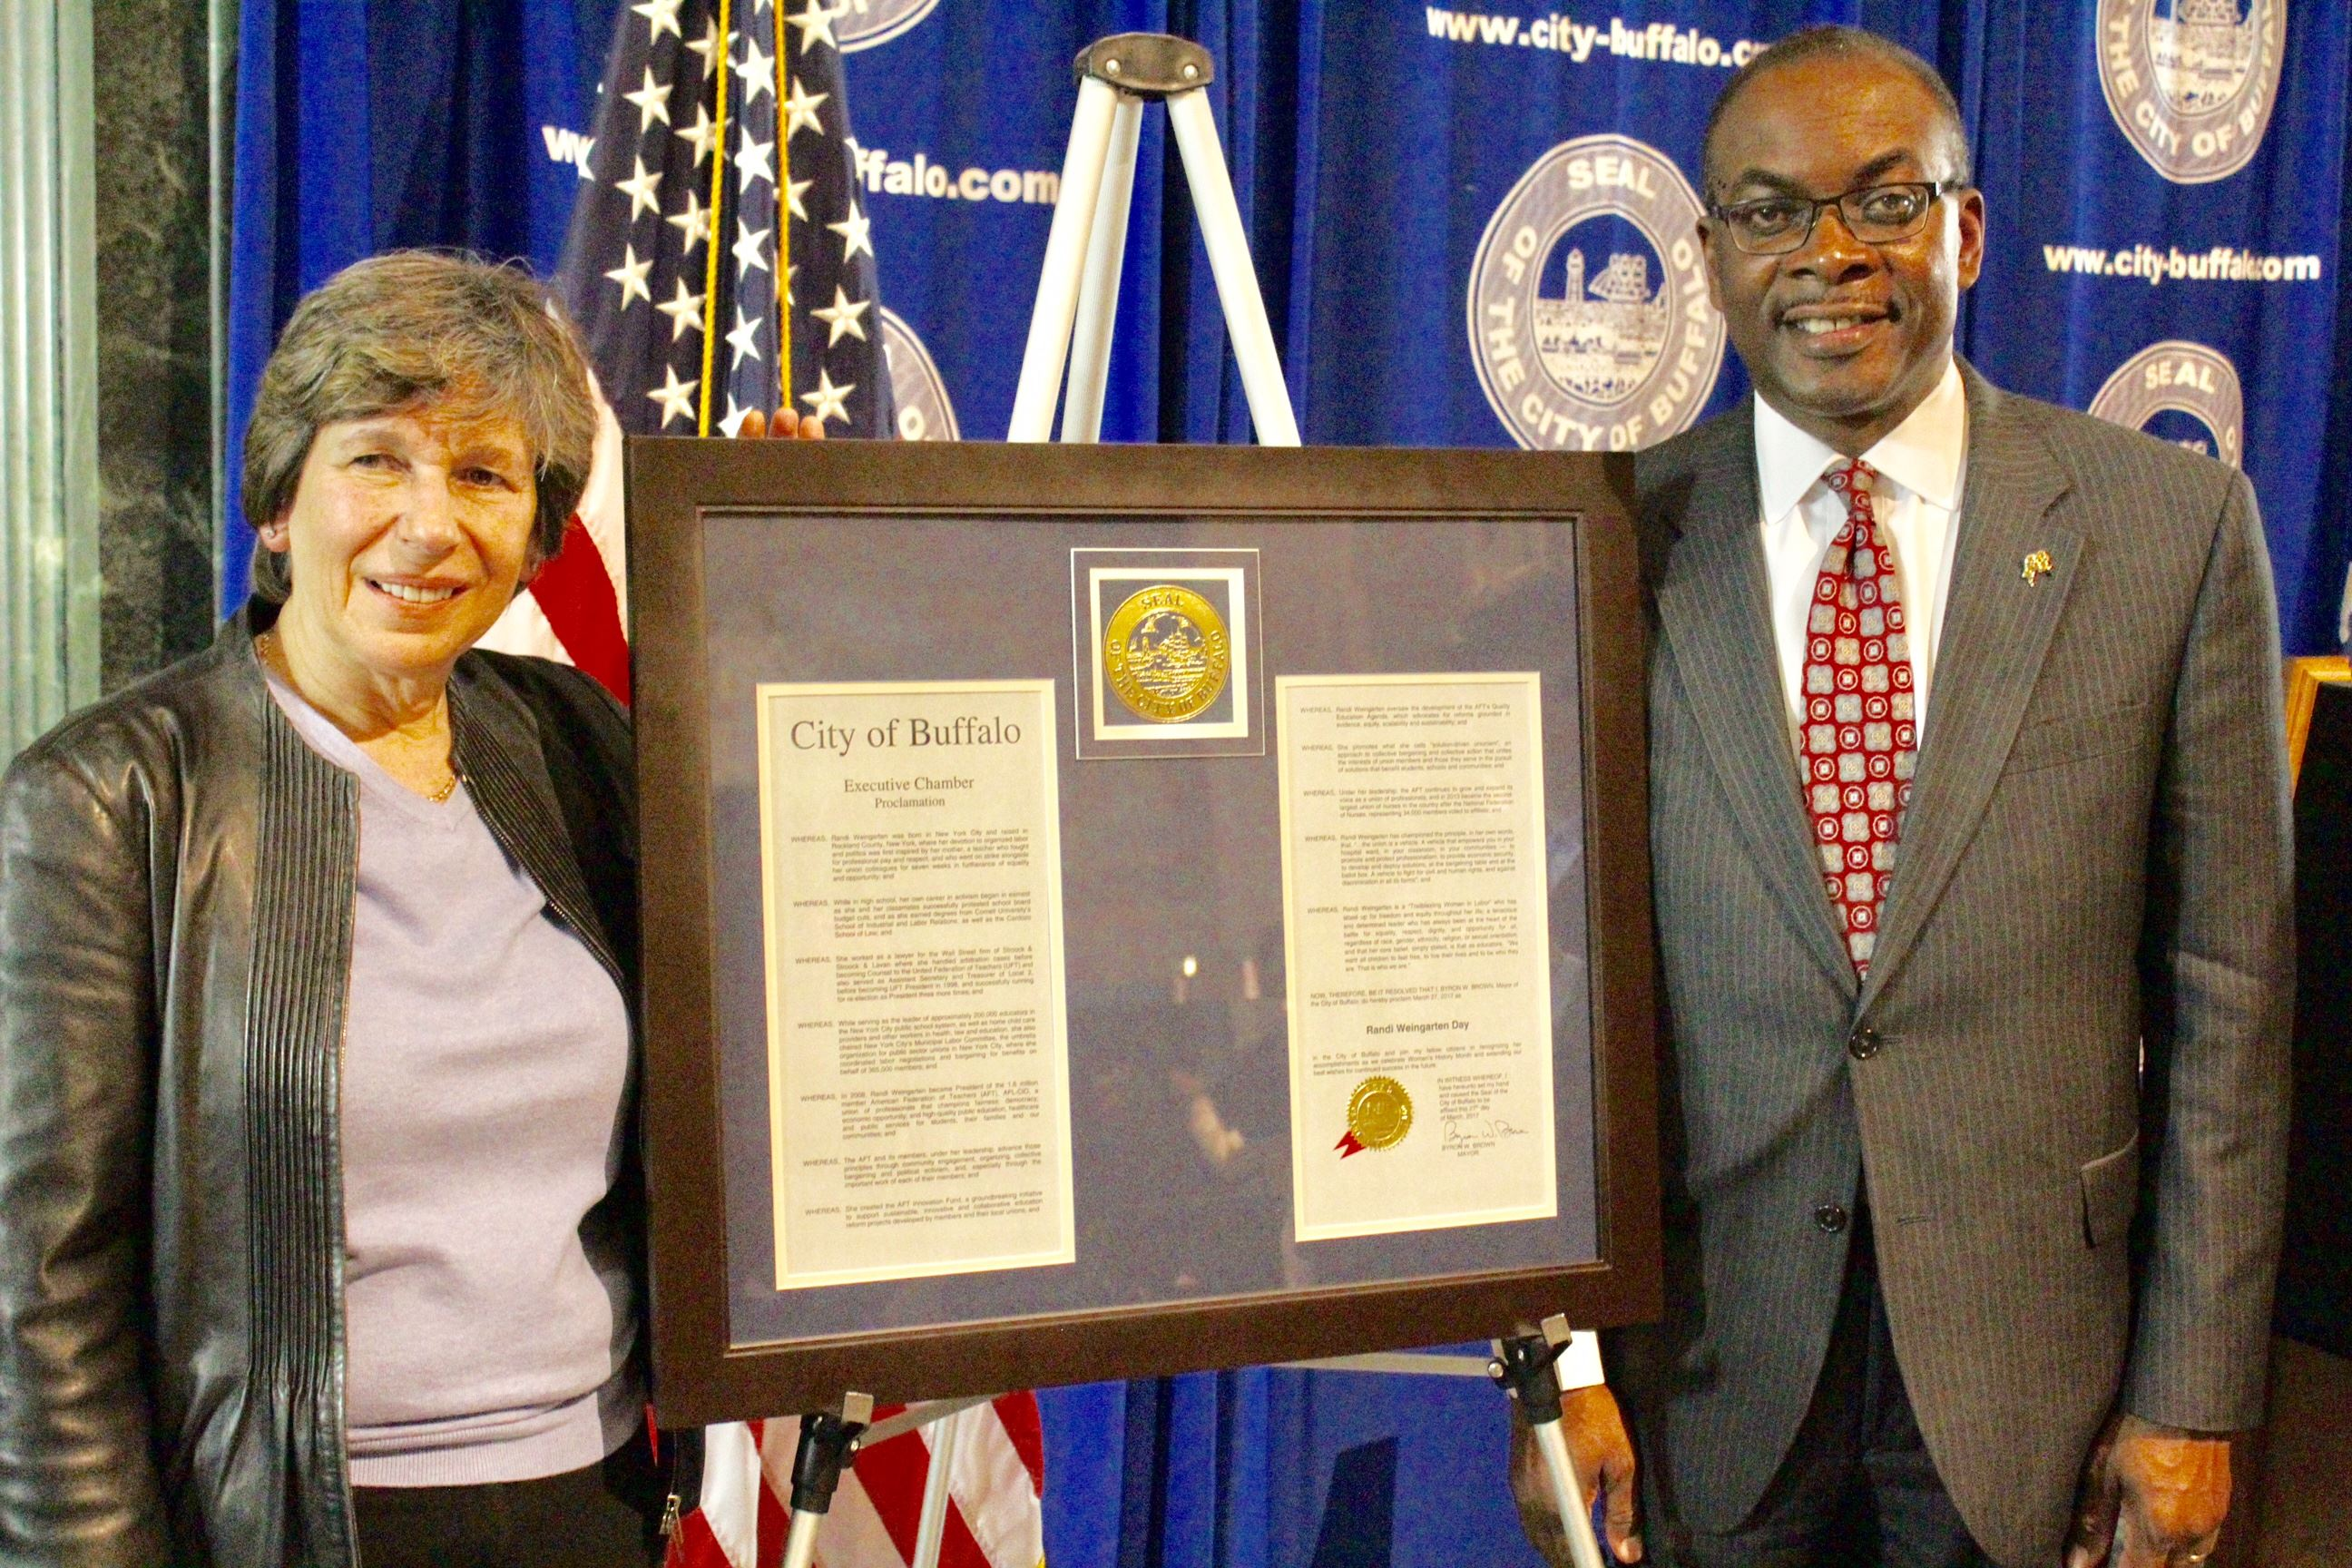 Mayor Brown Recognizes Randi Weingarten as he Concludes Woman's History Month